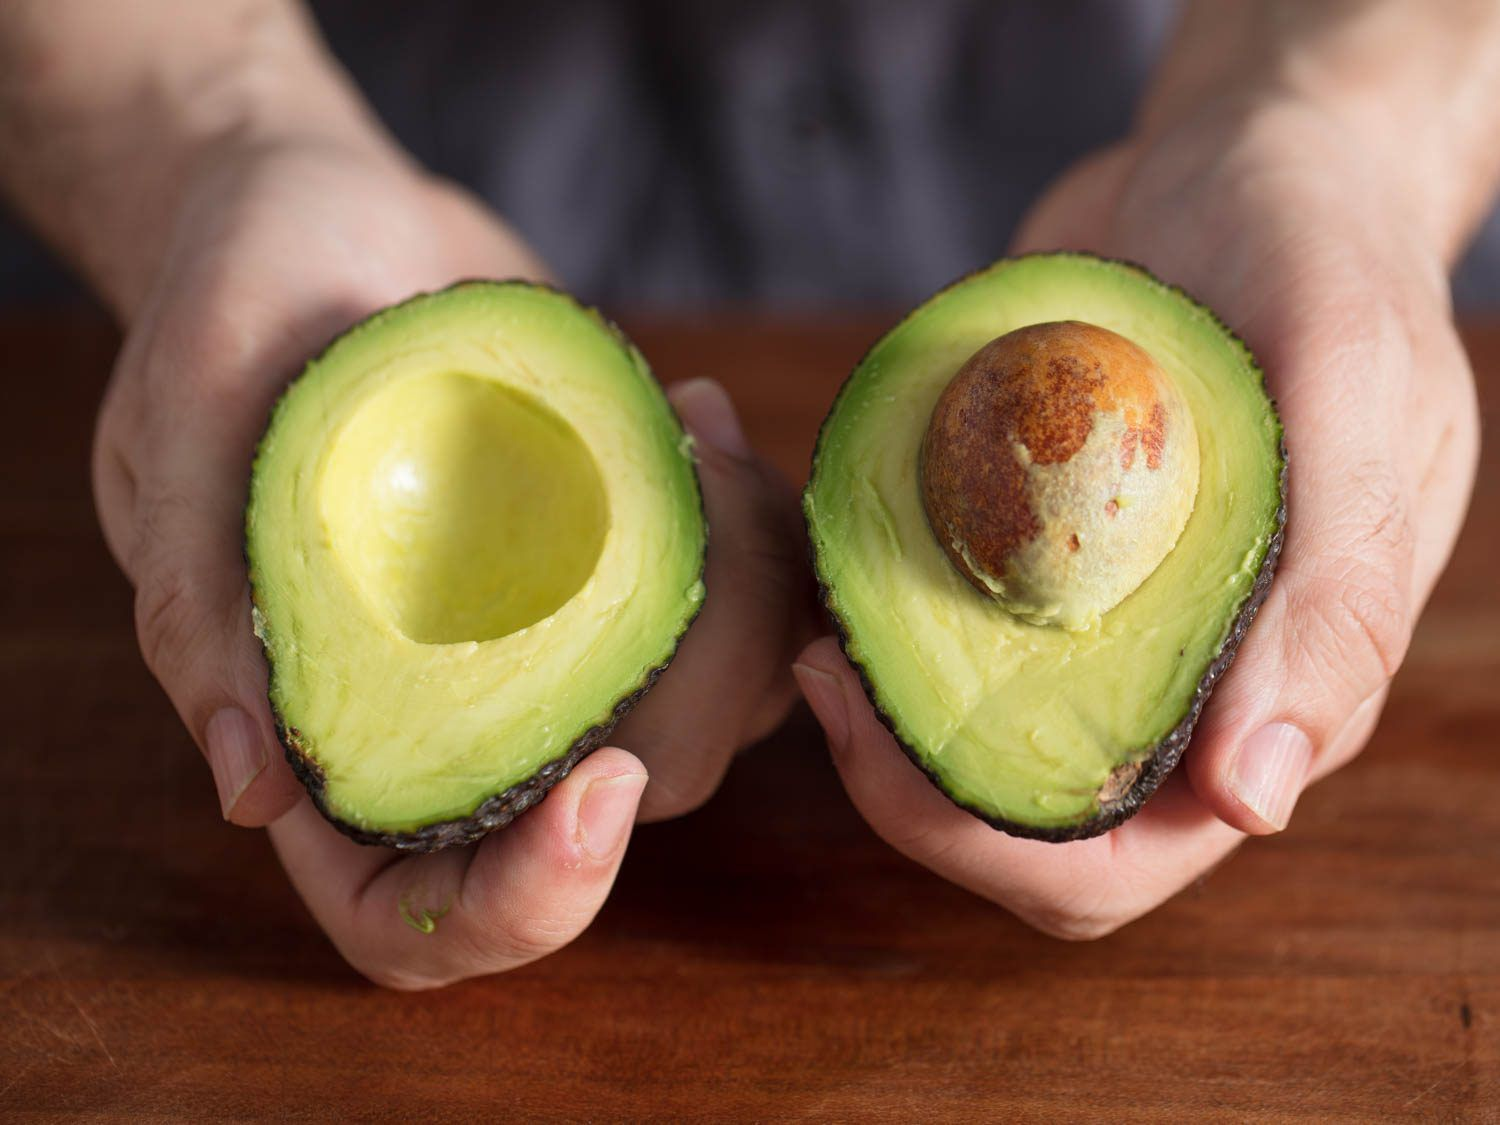 Two hands displaying the two halves of a split ripe avocado